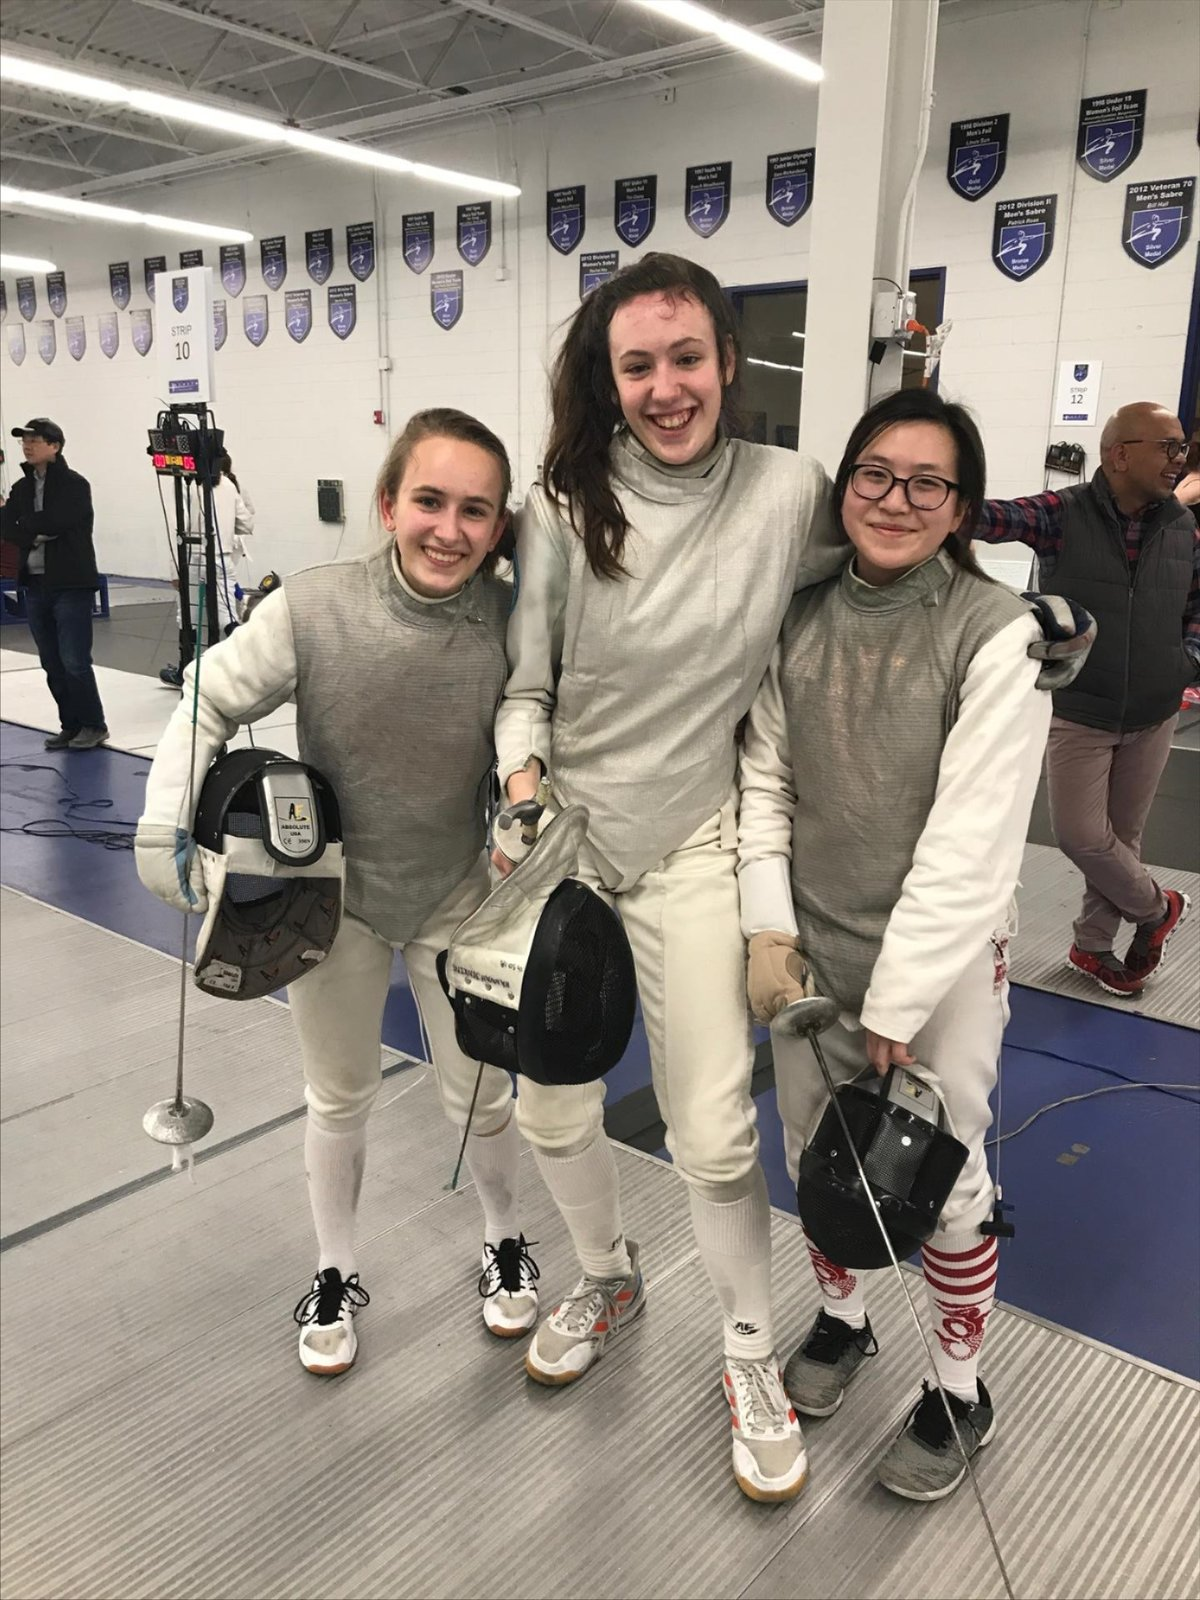 Women's Foil Wins Silver at State Championships